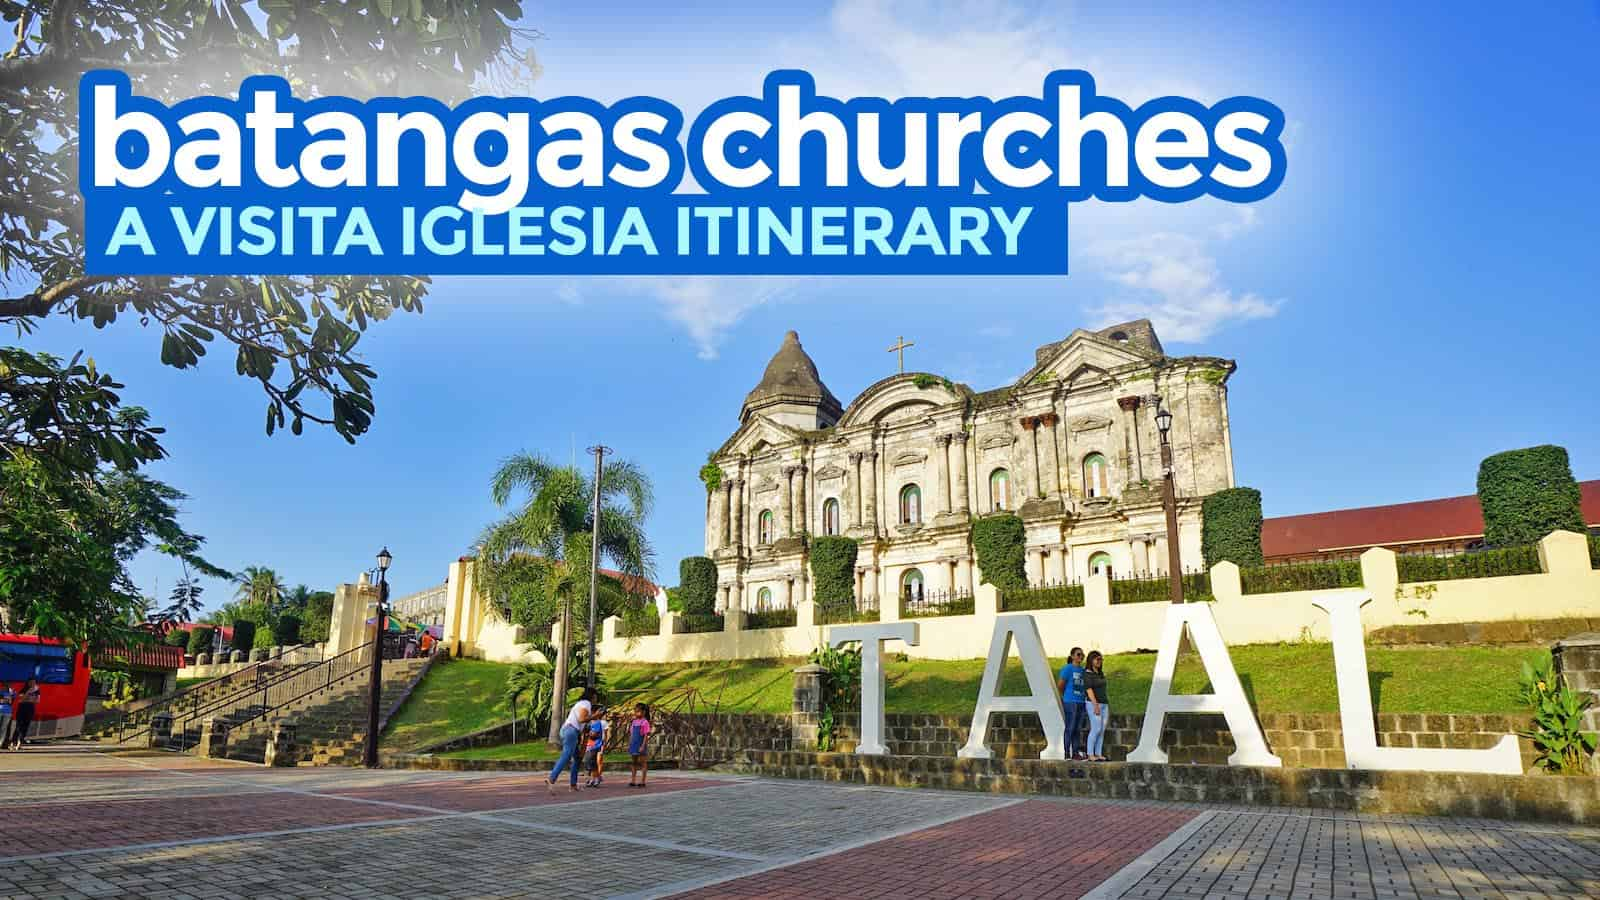 7 CHURCHES IN BATANGAS: A Visita Iglesia Itinerary